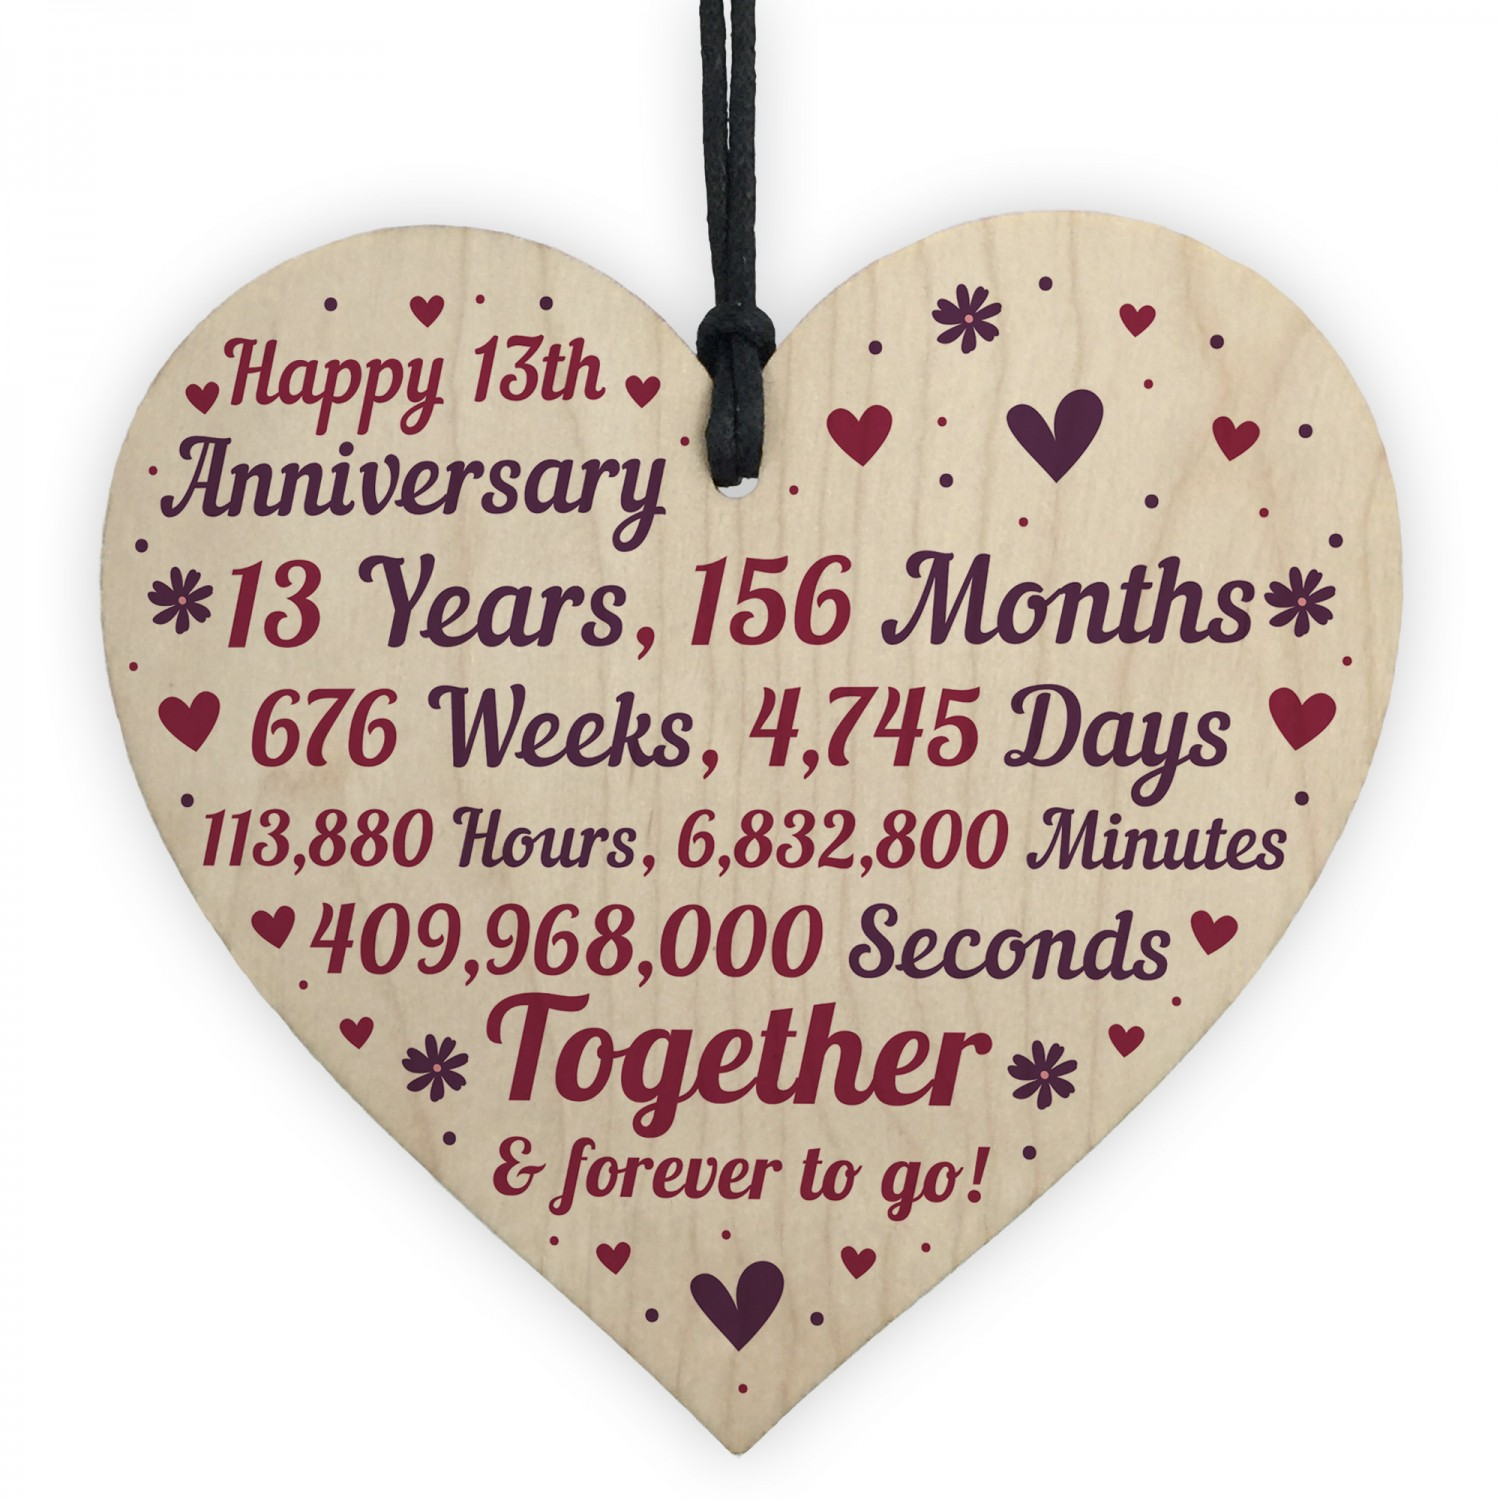 13th Wedding Anniversary Gift For Her: Anniversary Wooden Heart To Celebrate 13th Wedding Anniversary